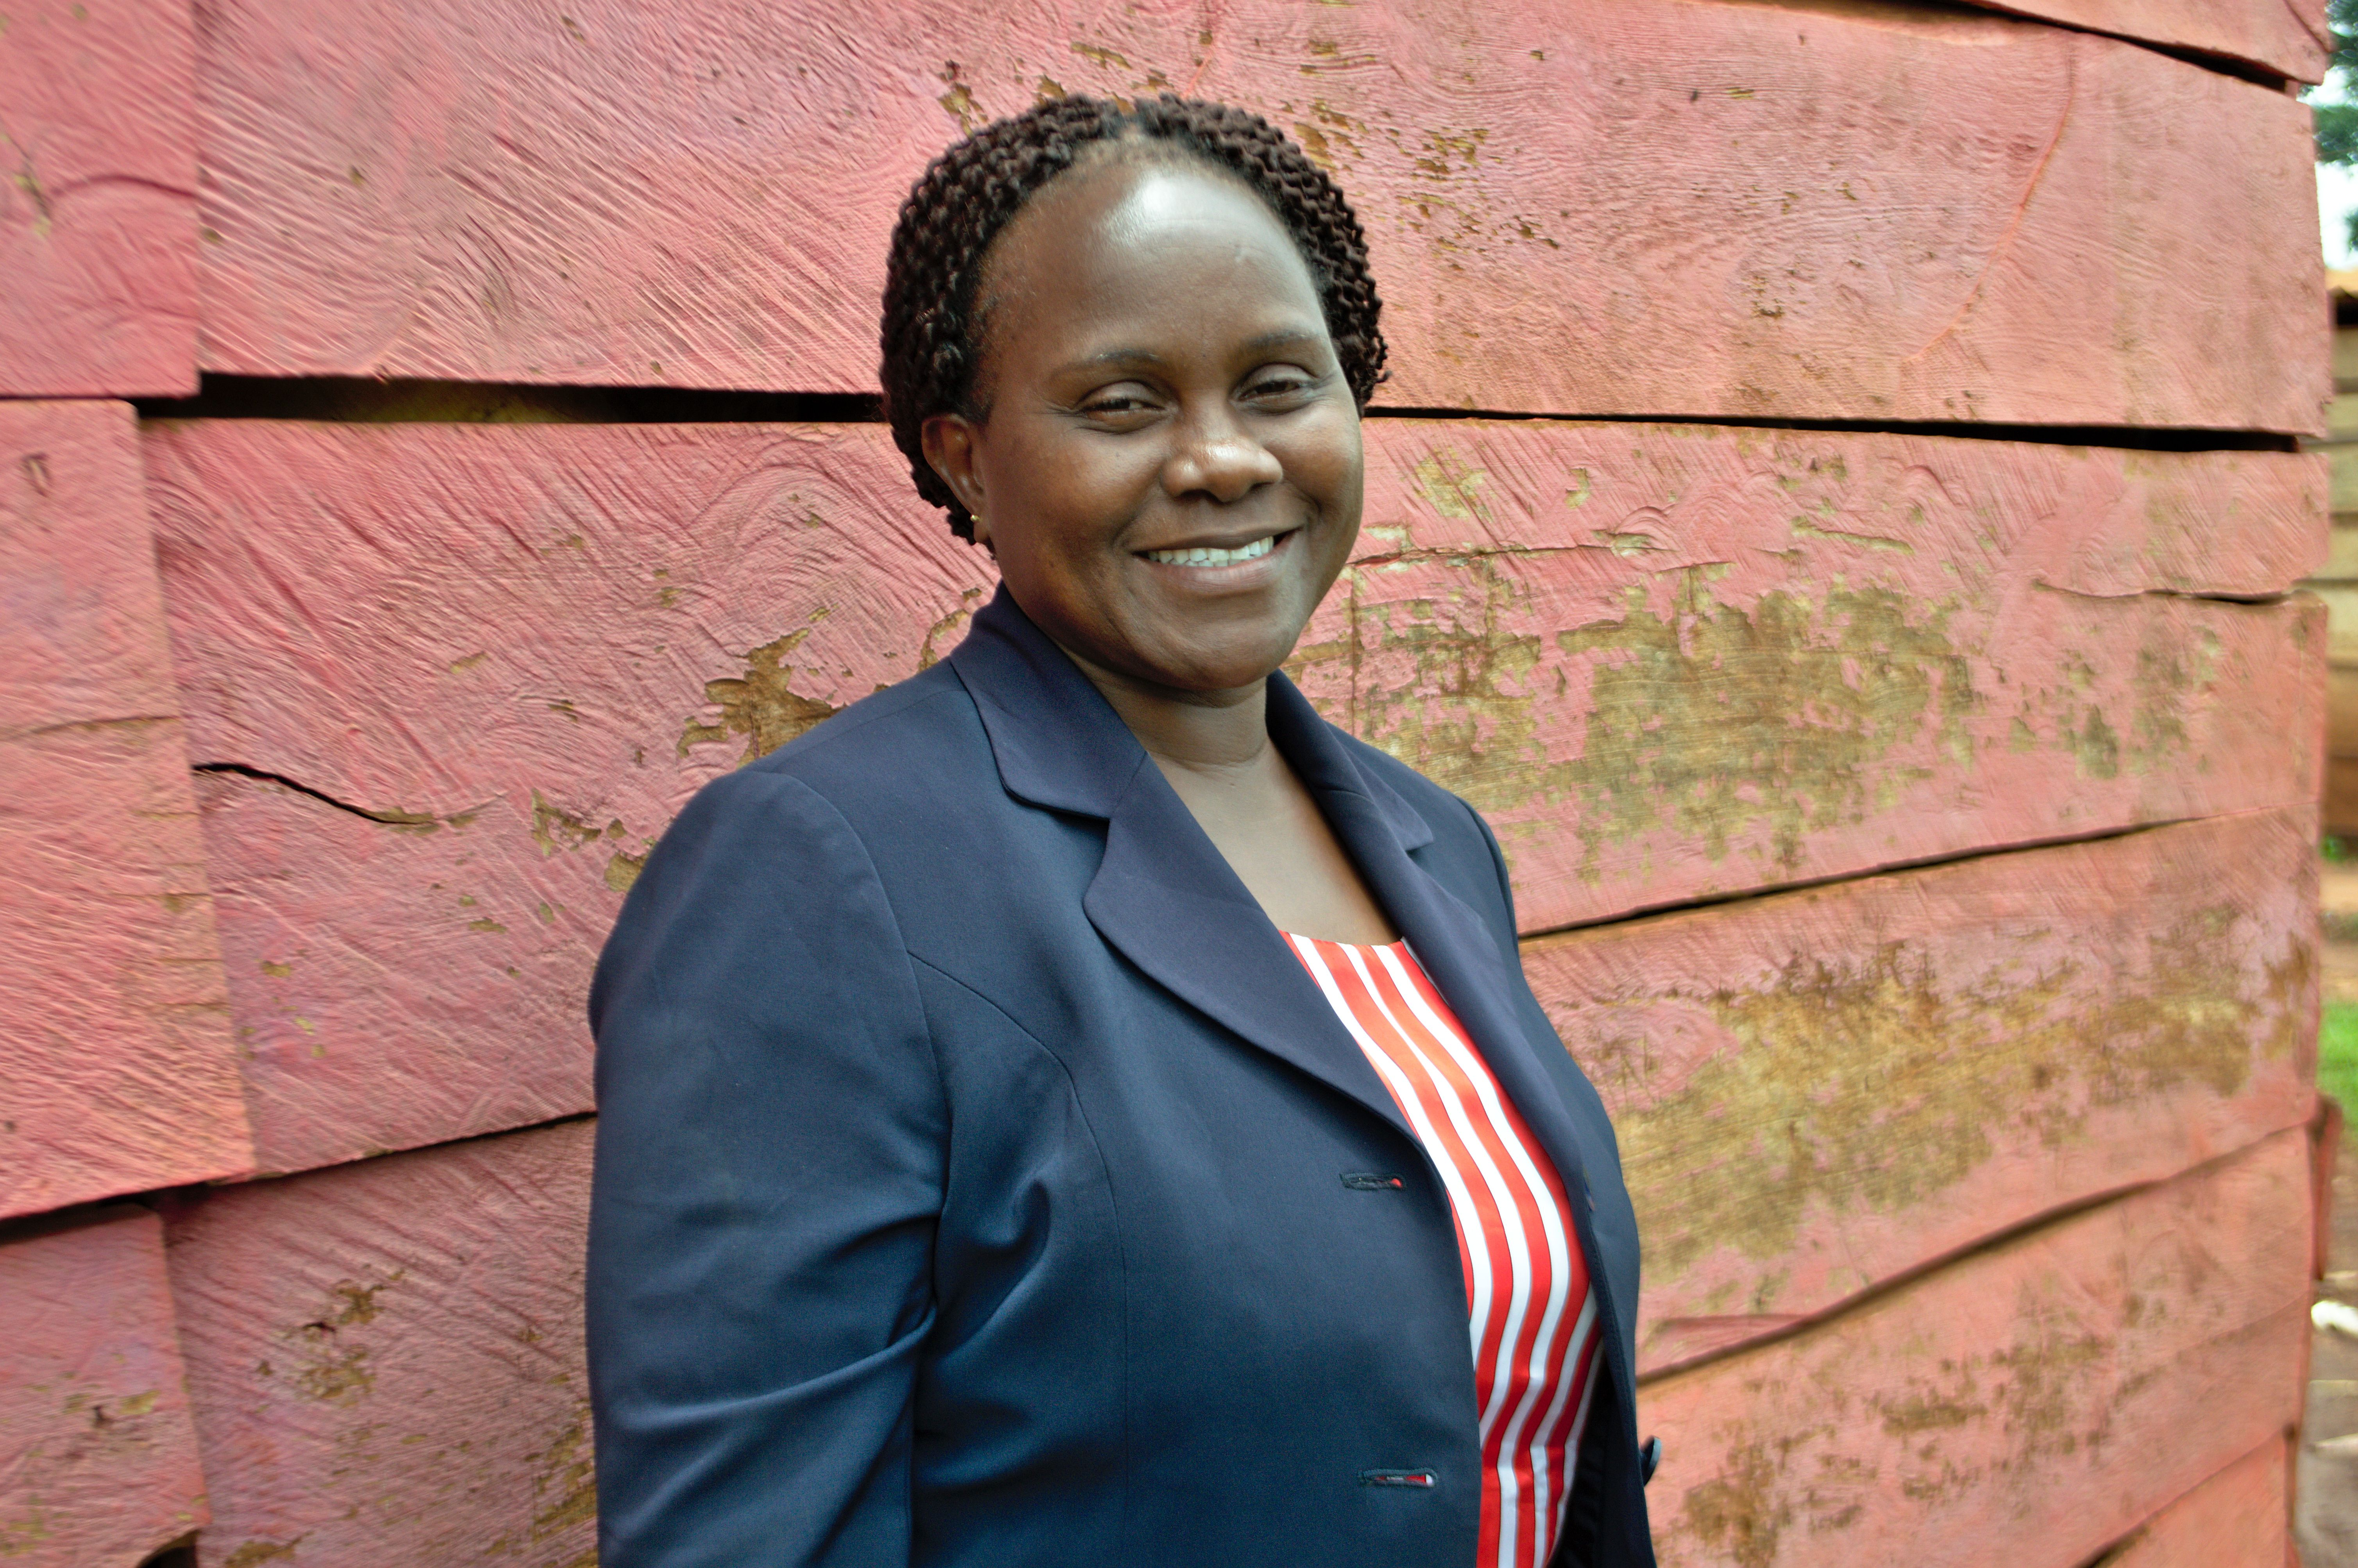 Harriet Nsubuga - WCFJC Business Coach | What WCFJC Means to Me